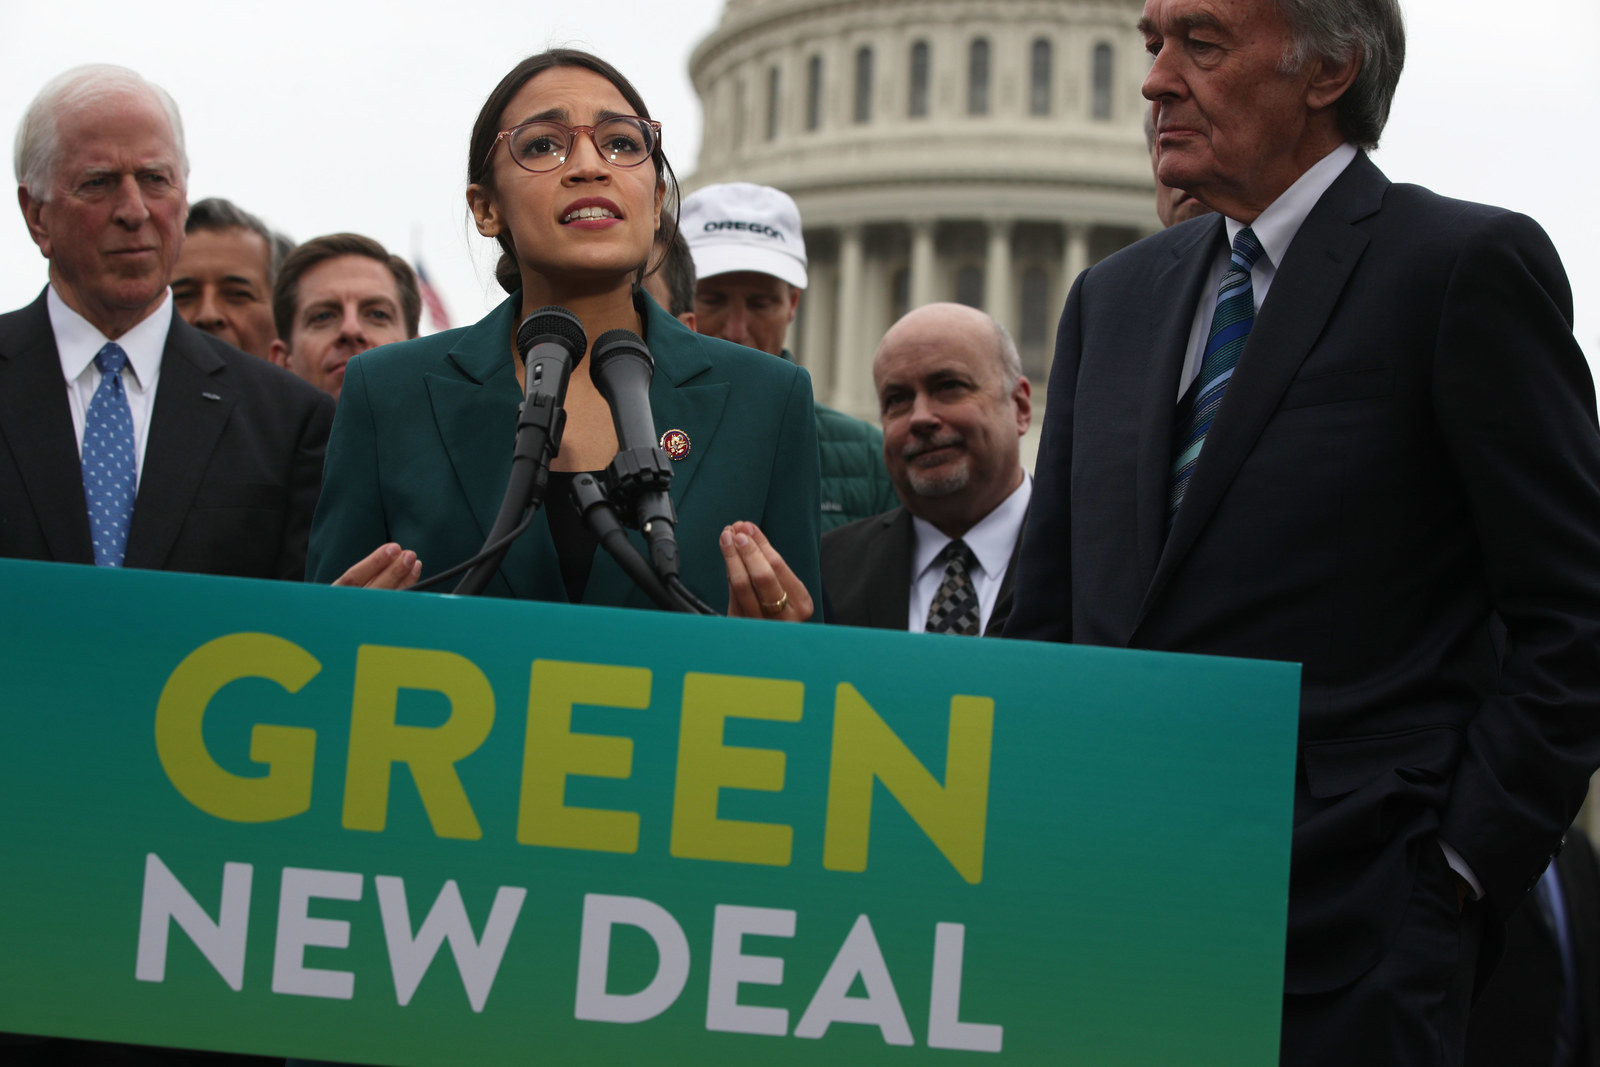 WASHINGTON, DC - FEBRUARY 07: U.S. Rep. Alexandria Ocasio-Cortez (D-NY) speaks as Sen. Ed Markey (D-MA) (R) and other Congressional Democrats listen during a news conference in front of the U.S. Capitol February 7, 2019 in Washington, DC. Sen. Markey and Rep. Ocasio-Cortez held a news conference to unveil their Green New Deal resolution.